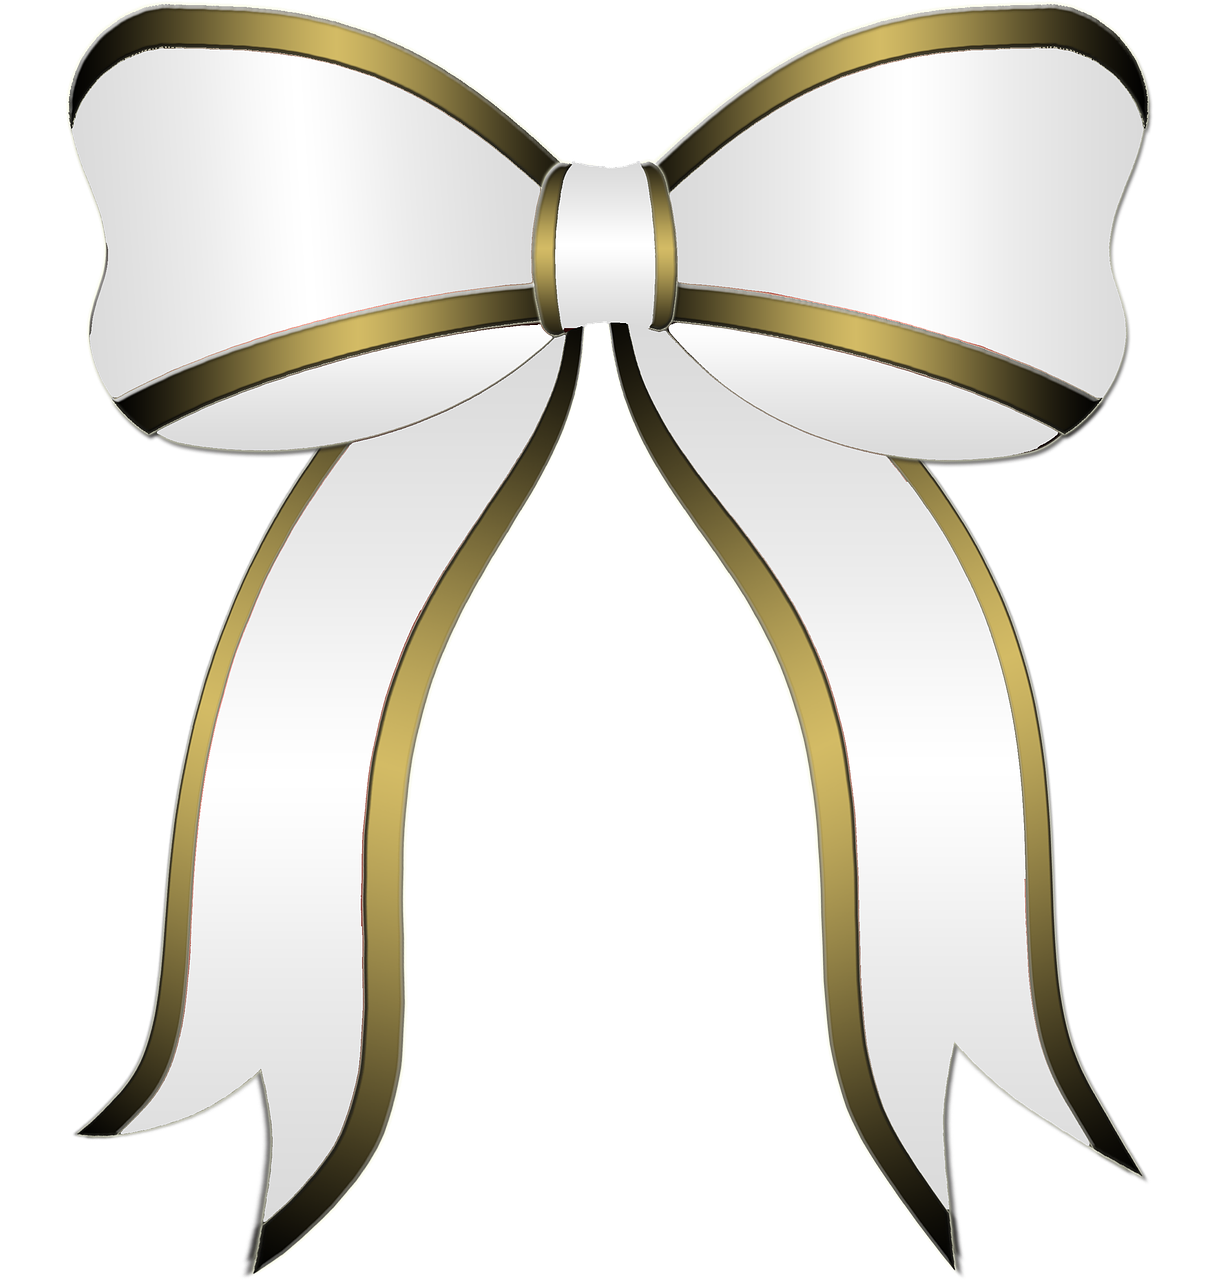 Free Image On Pixabay White Bow Gift Party Bow Ribbon White Bow Bows Gifts